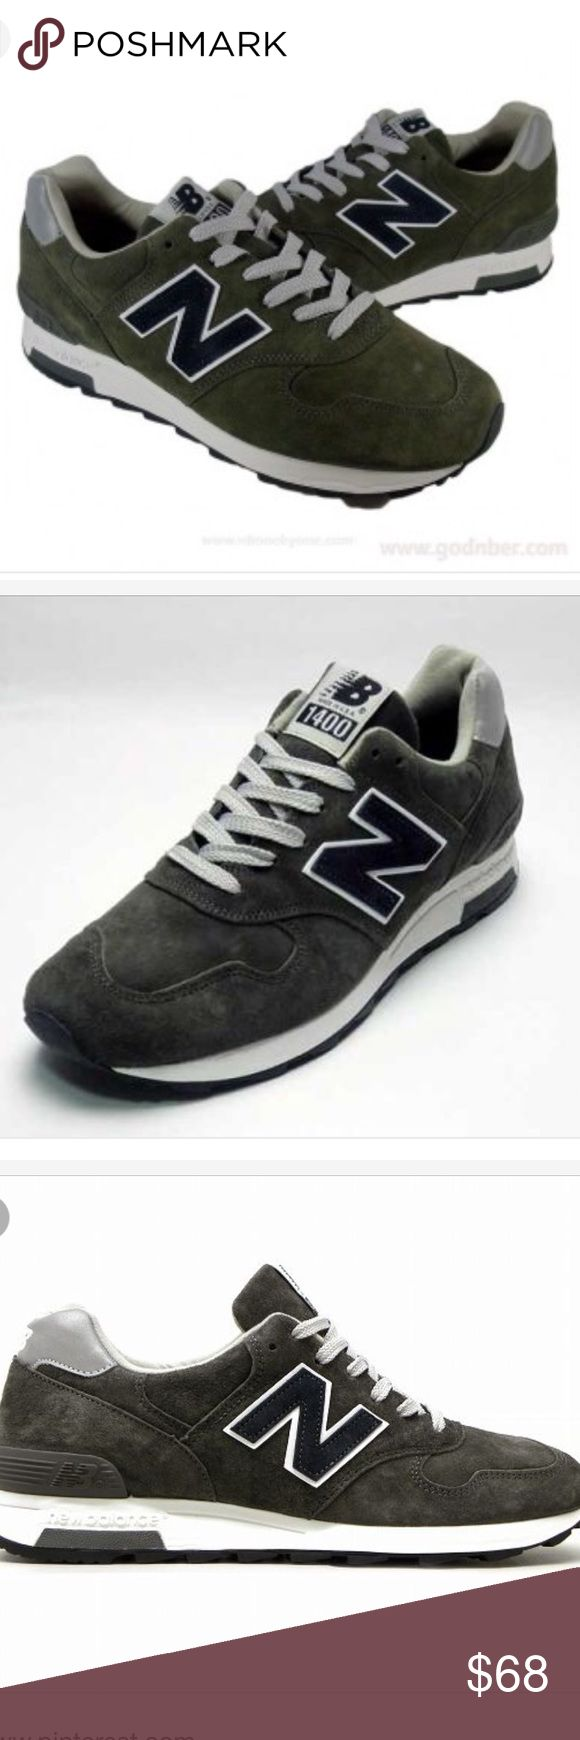 new balance inserts. collaboration new balance for j crew sneakers m1400 dm jcrew . each pair is inserts